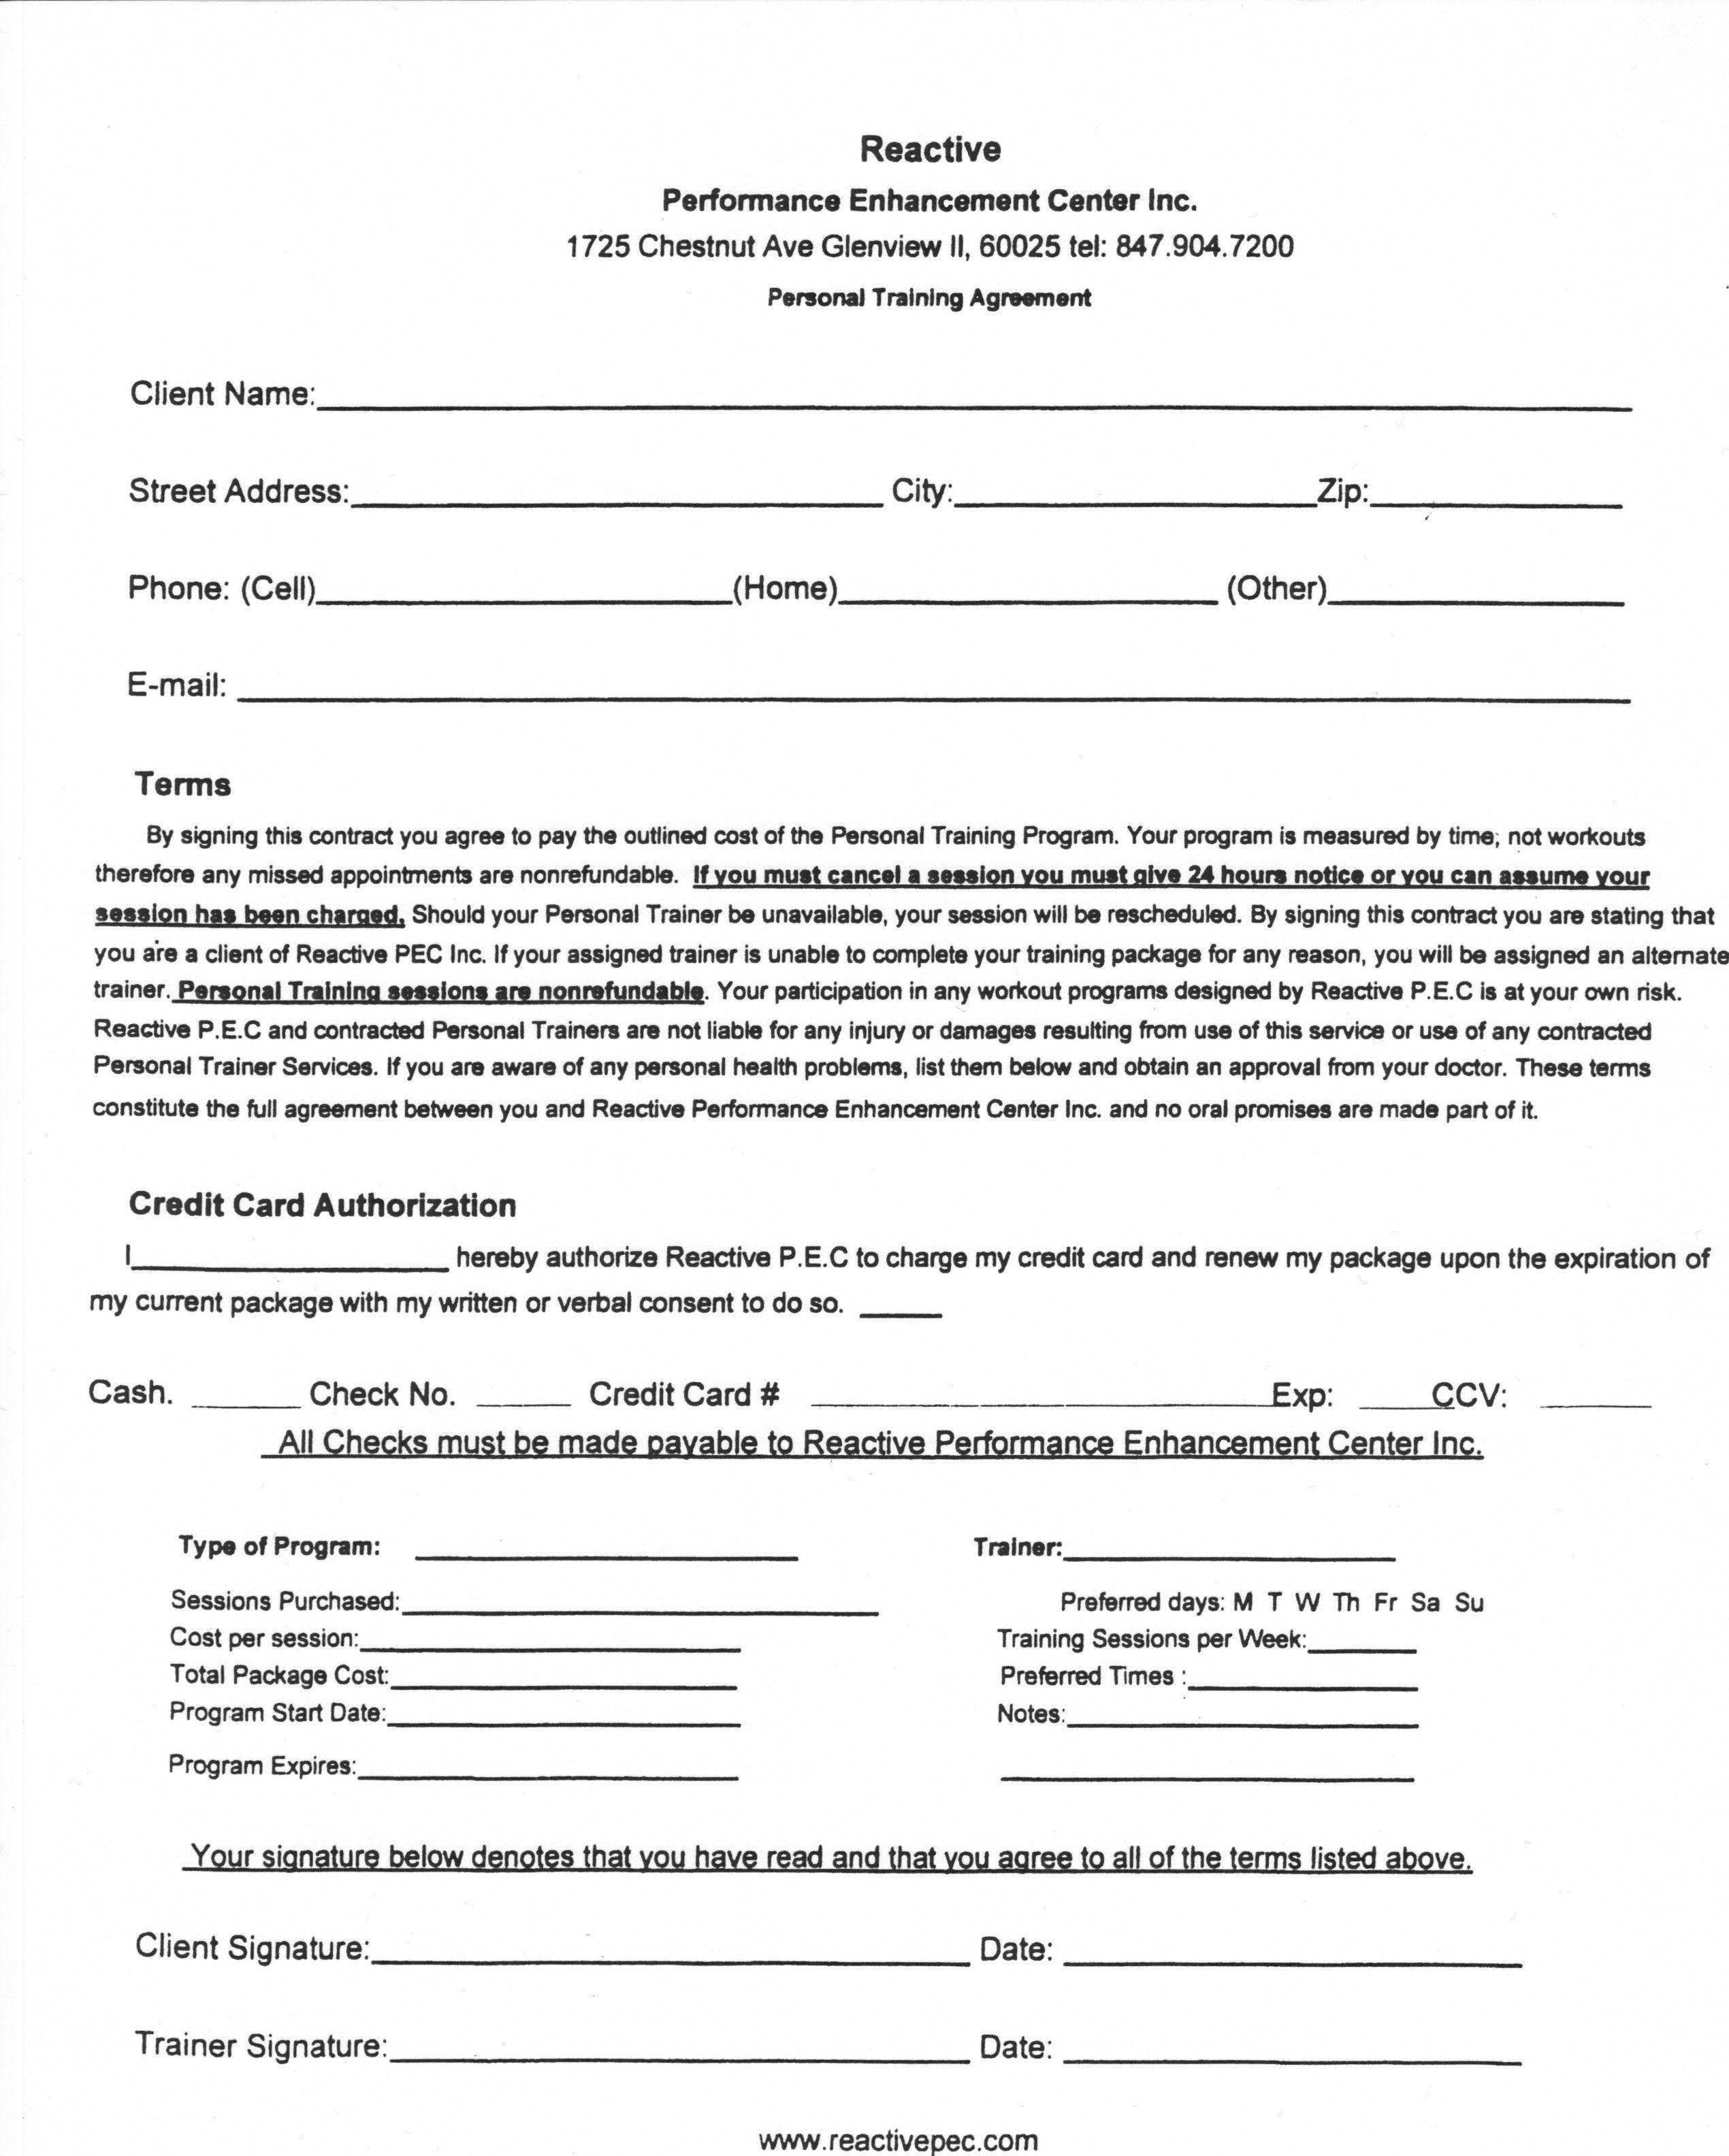 Personal Training Forms Images Personal Training Agreement